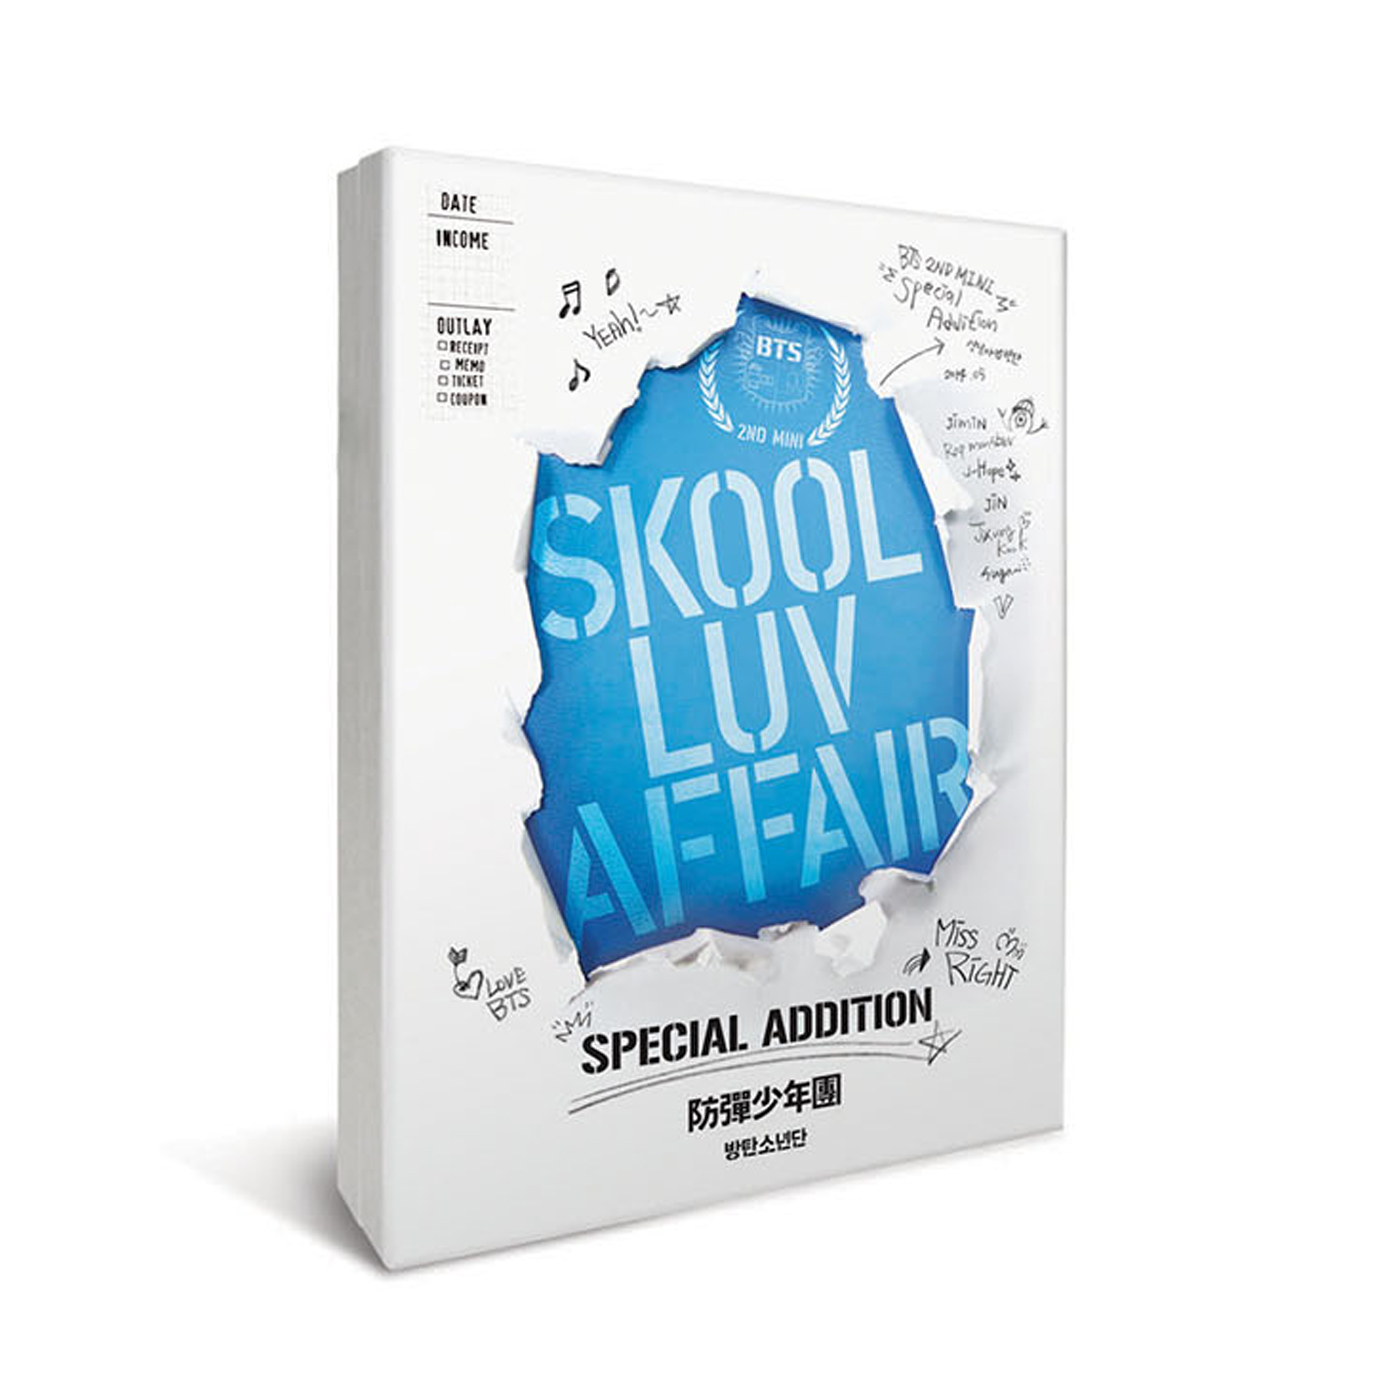 Skool Luv Affair -SPECIAL ADDITION